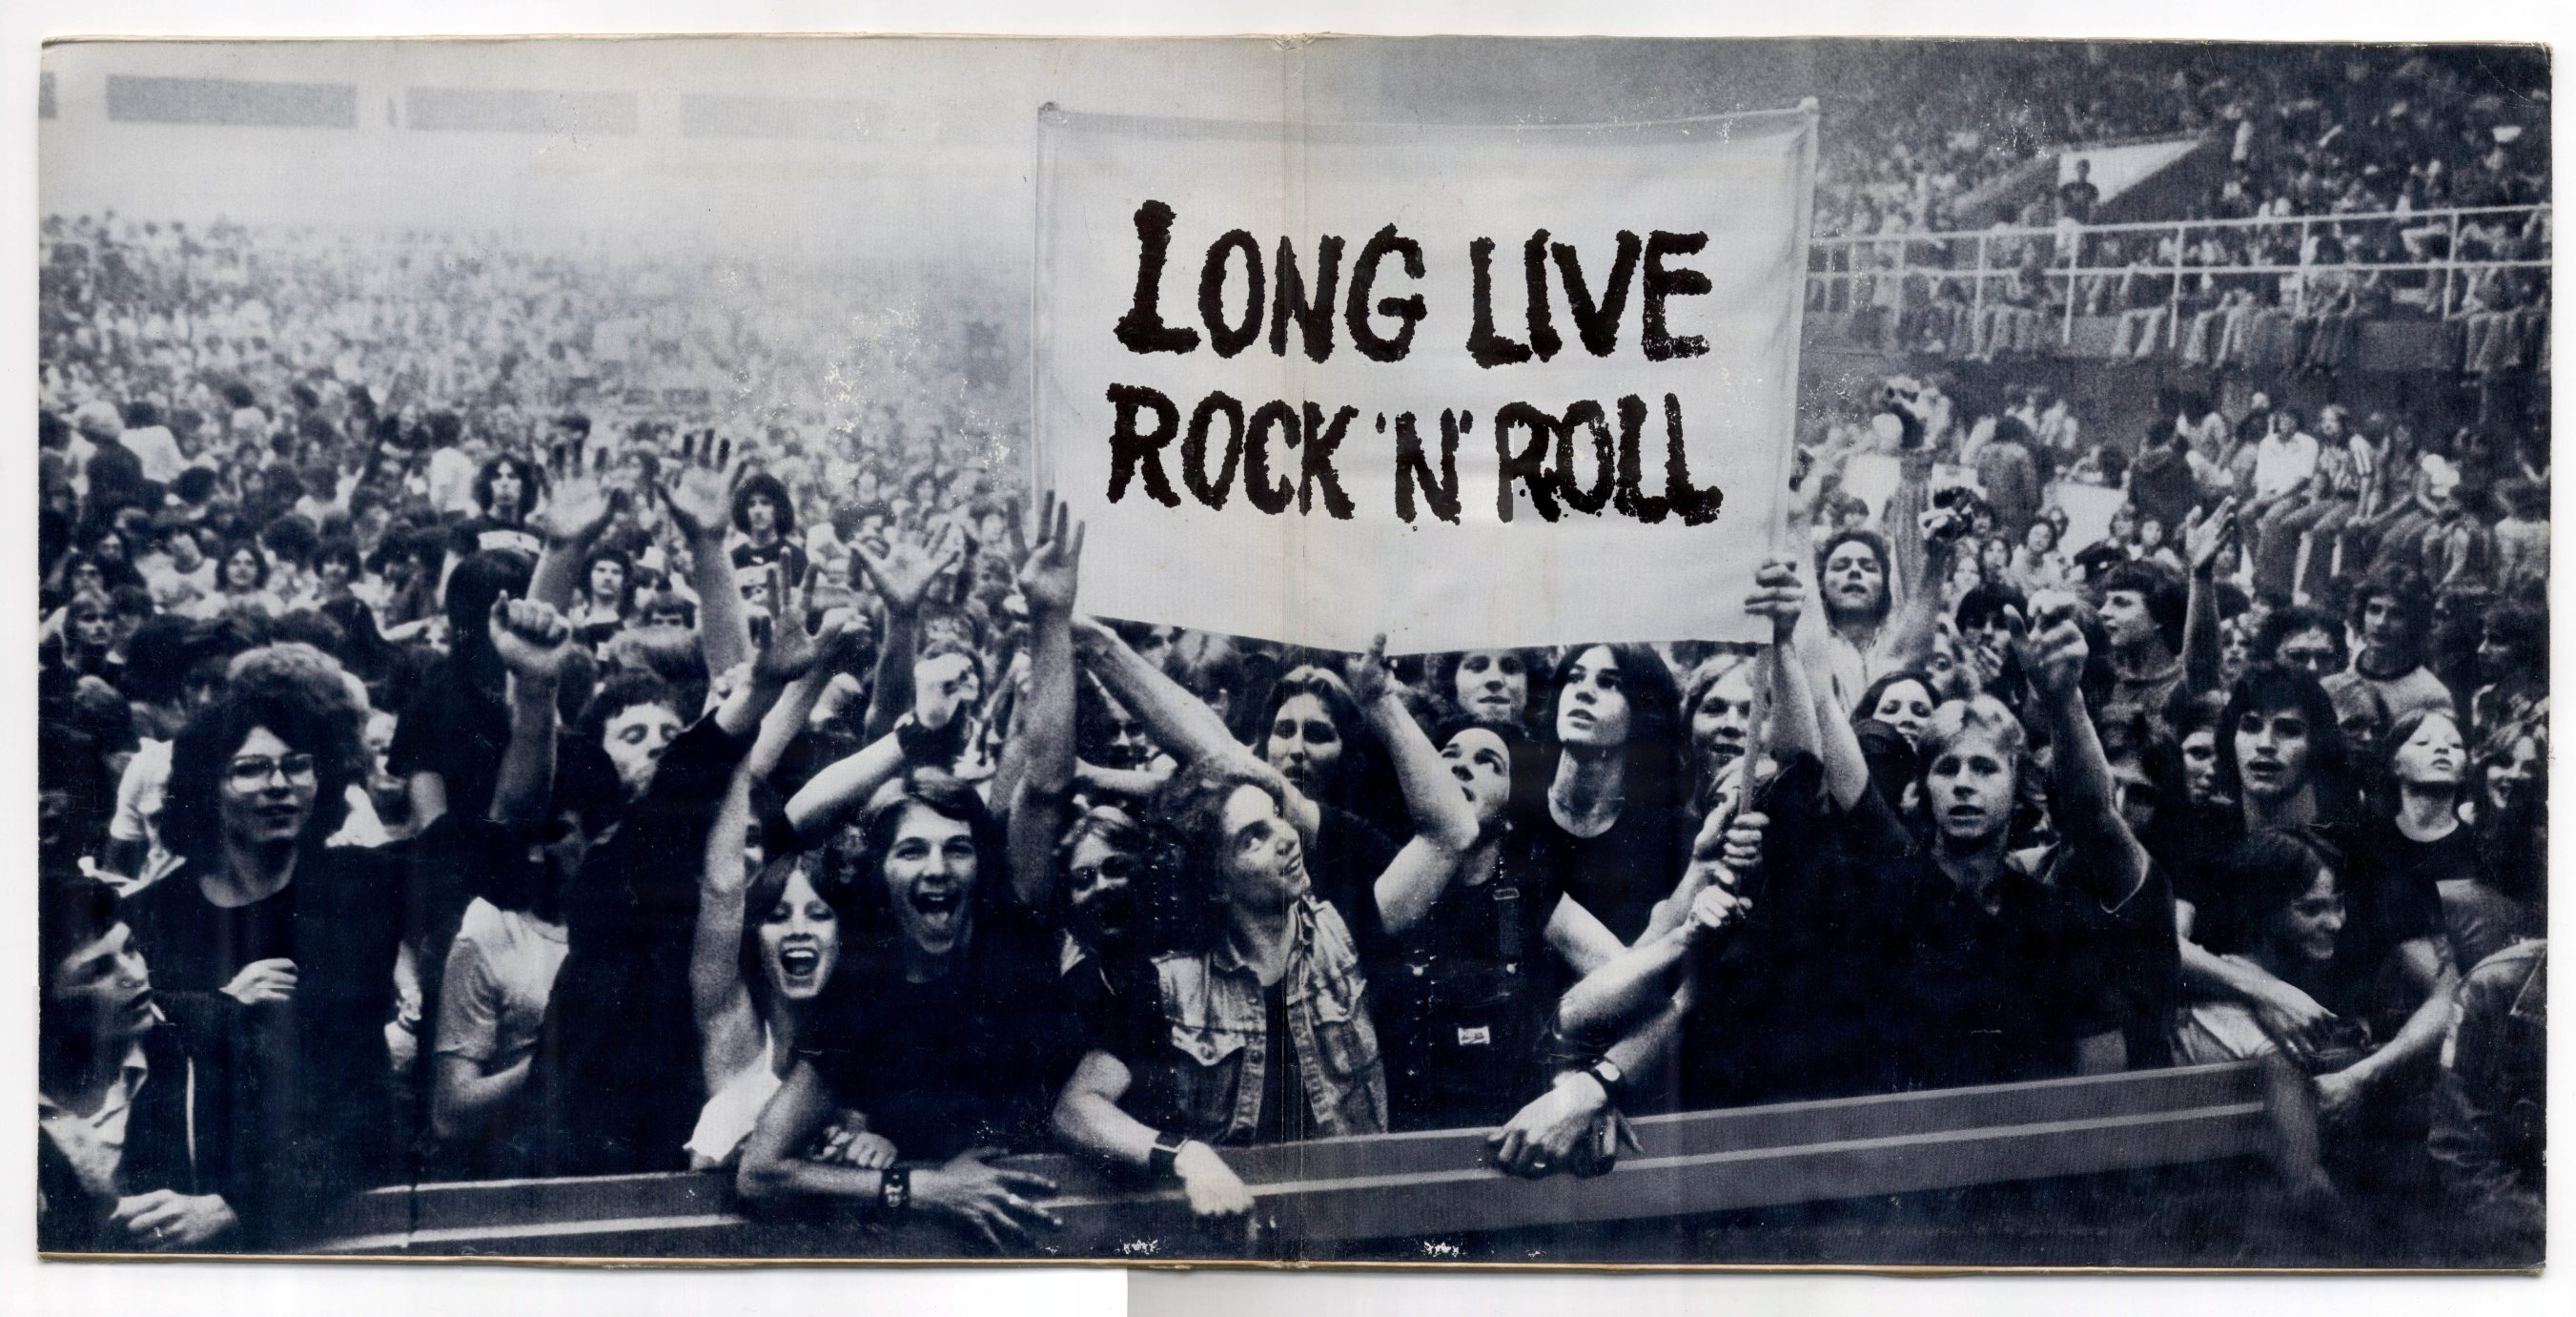 Long Live Rock N Roll